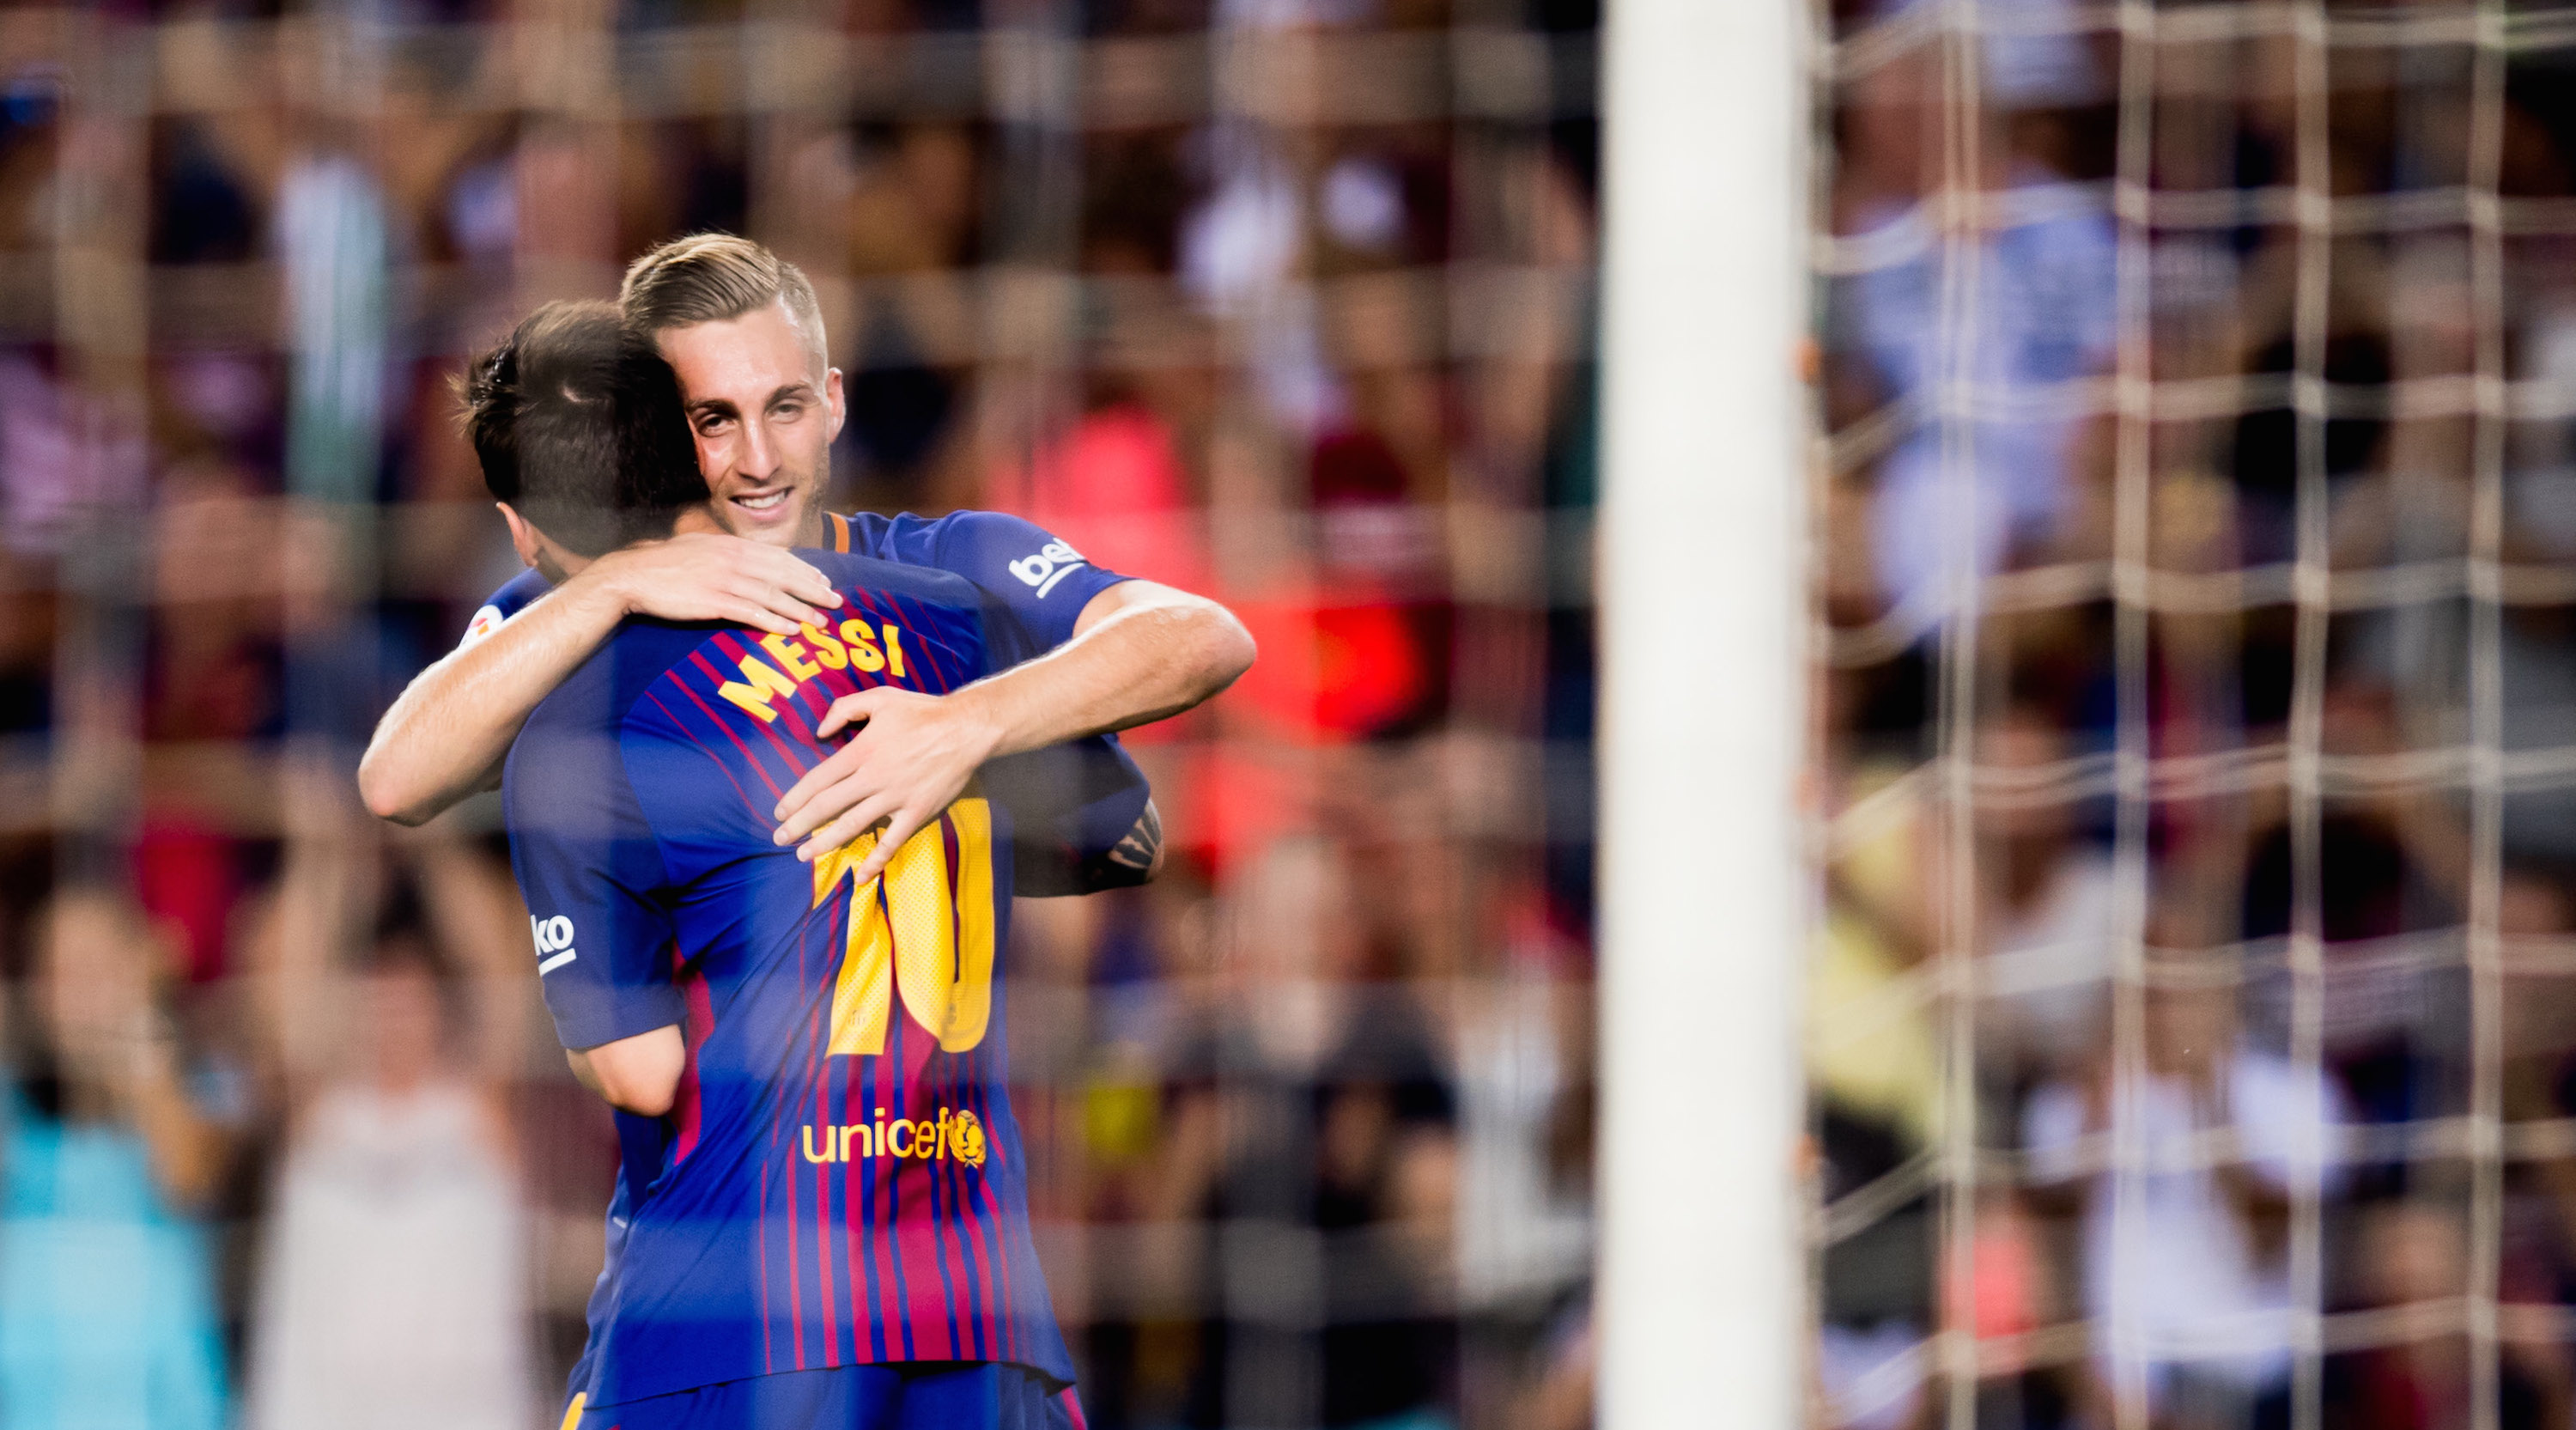 BARCELONA, SPAIN - AUGUST 07: Lionel Messi of FC Barcelona celebrates with his teammate Gerard Deulofeu (R) after scoring his team's third goal during the Joan Gamper Trophy match between FC Barcelona and Chapecoense at Camp Nou stadium on August 7, 2017 in Barcelona, Spain. (Photo by Alex Caparros/Getty Images)